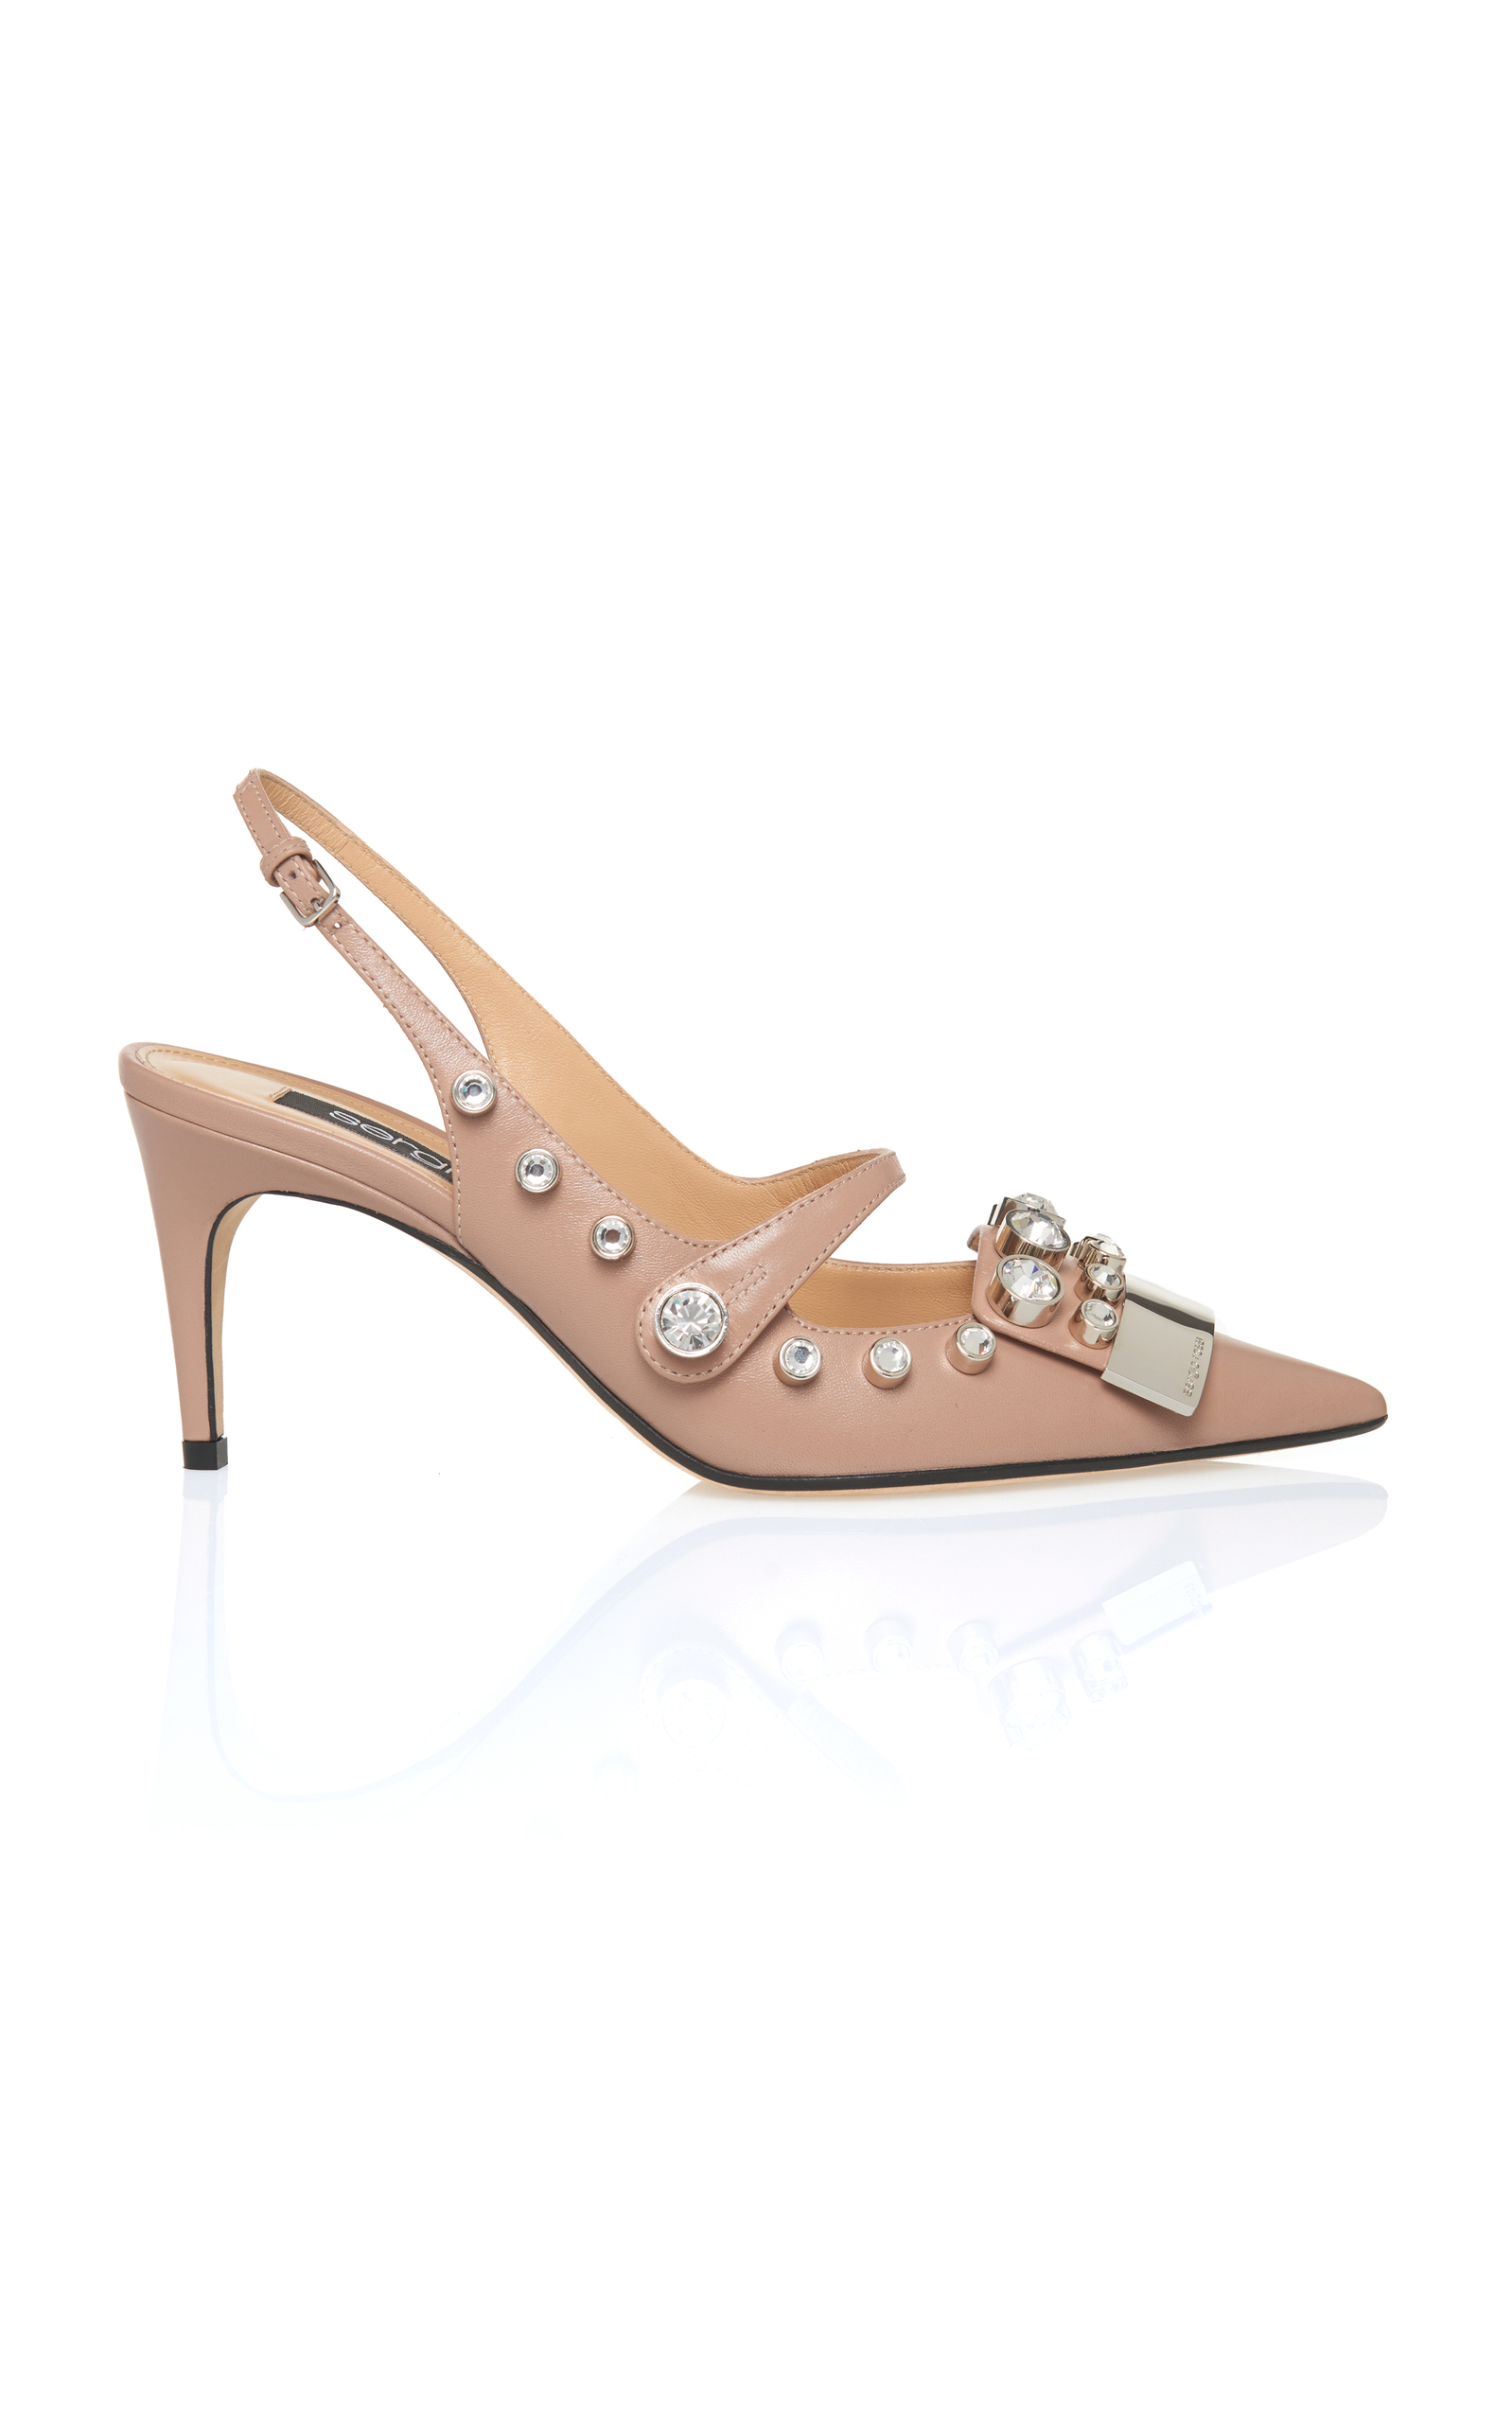 Sergio Rossi embellished slingback sandals clearance low cost sale view Bs7A8mq